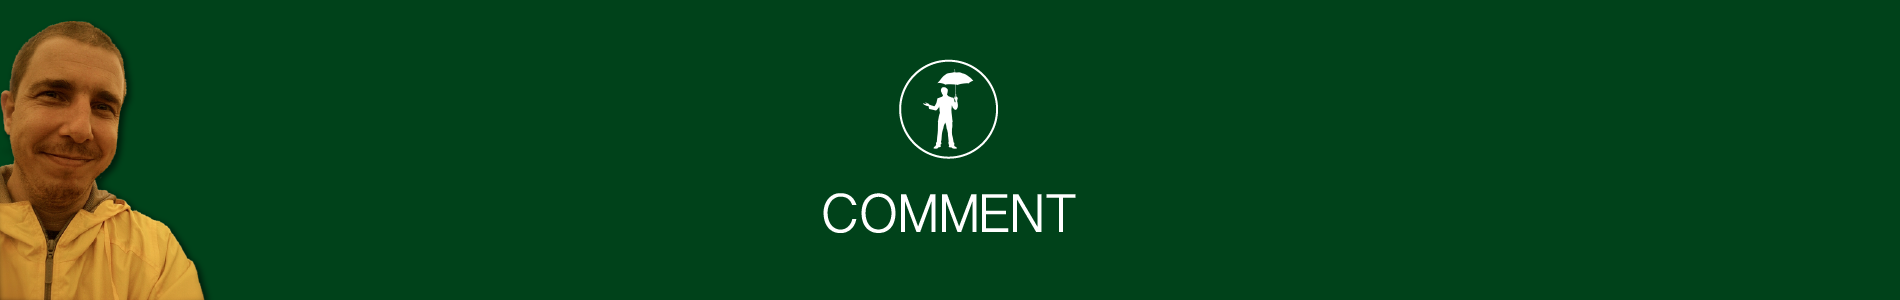 Header image for Comment page